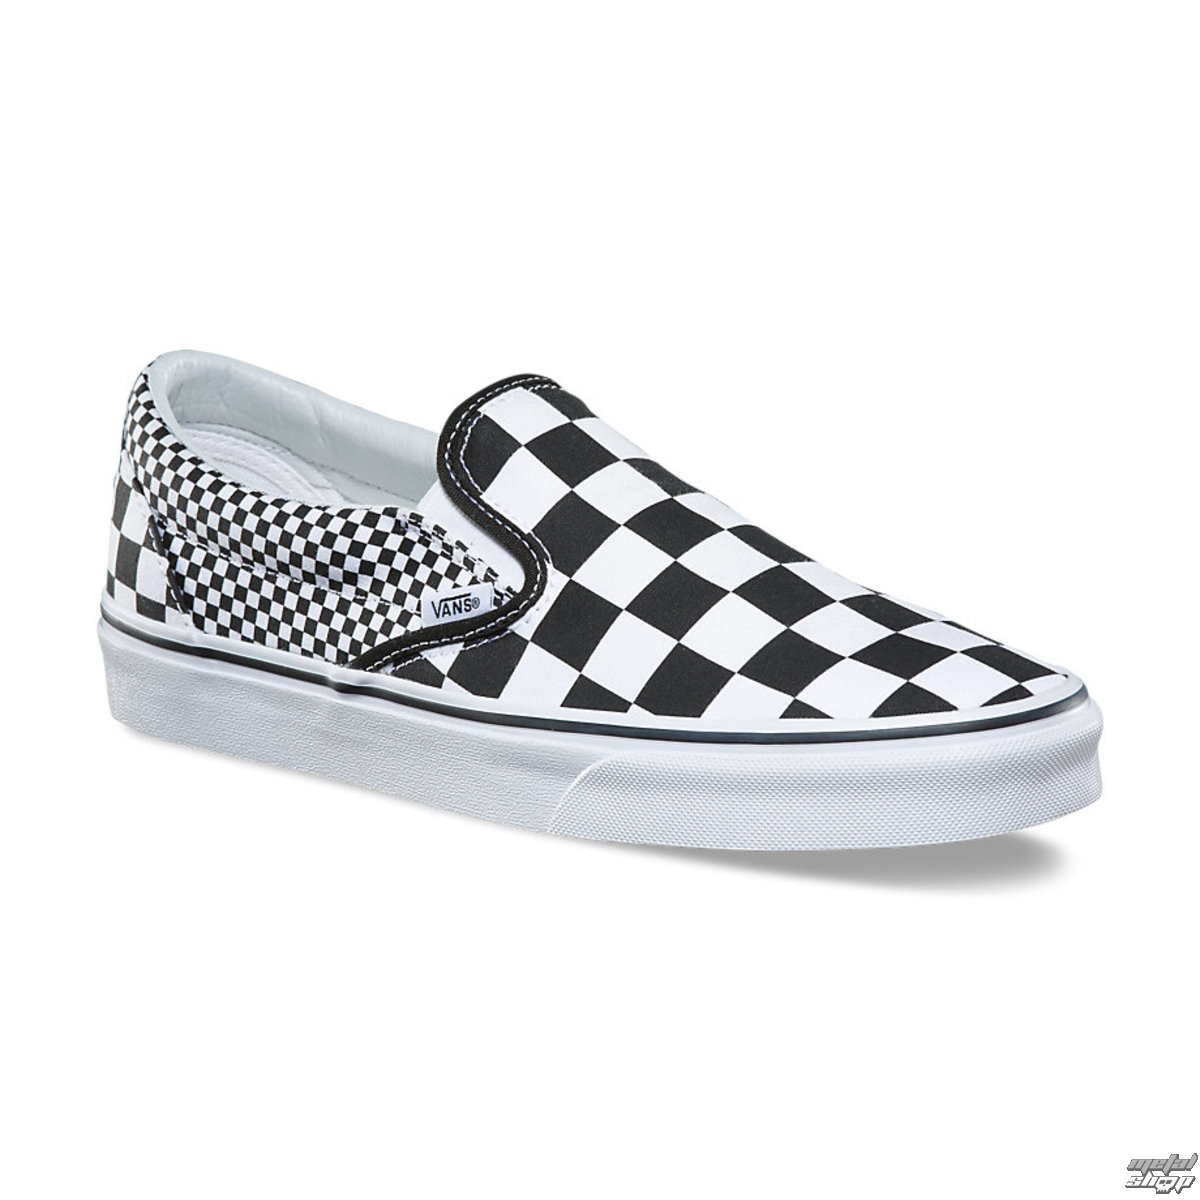 boty VANS - UA CLASSIC SLIP-ON (MIX CHECKER) - VA38F7Q9B - metalshop.cz 501209684f